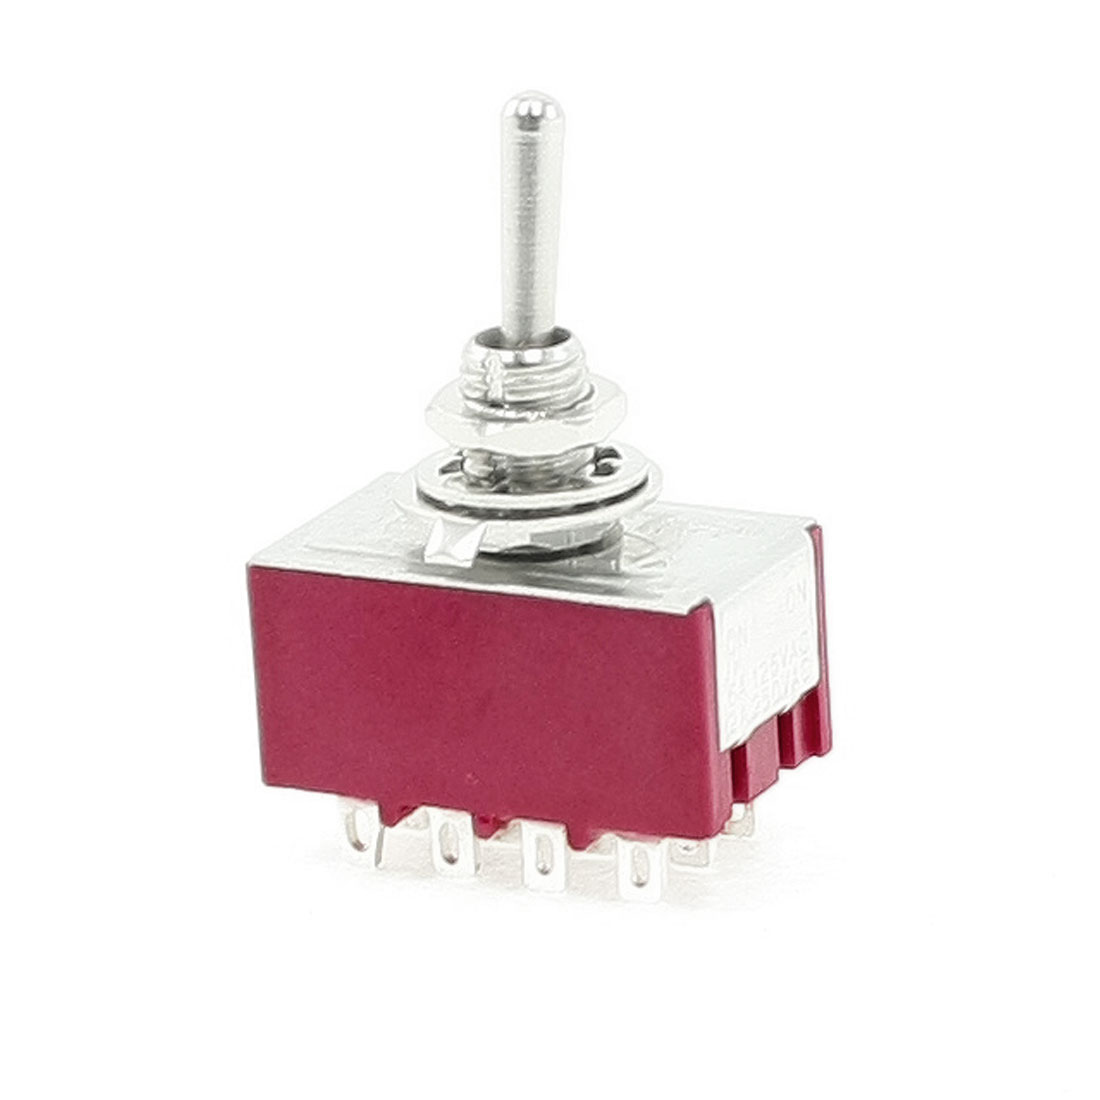 6A/125VAC 2A/250VAC 12 Pin 4PDT ON/ON 2 Position Mini MTS-402 Toggle Switch